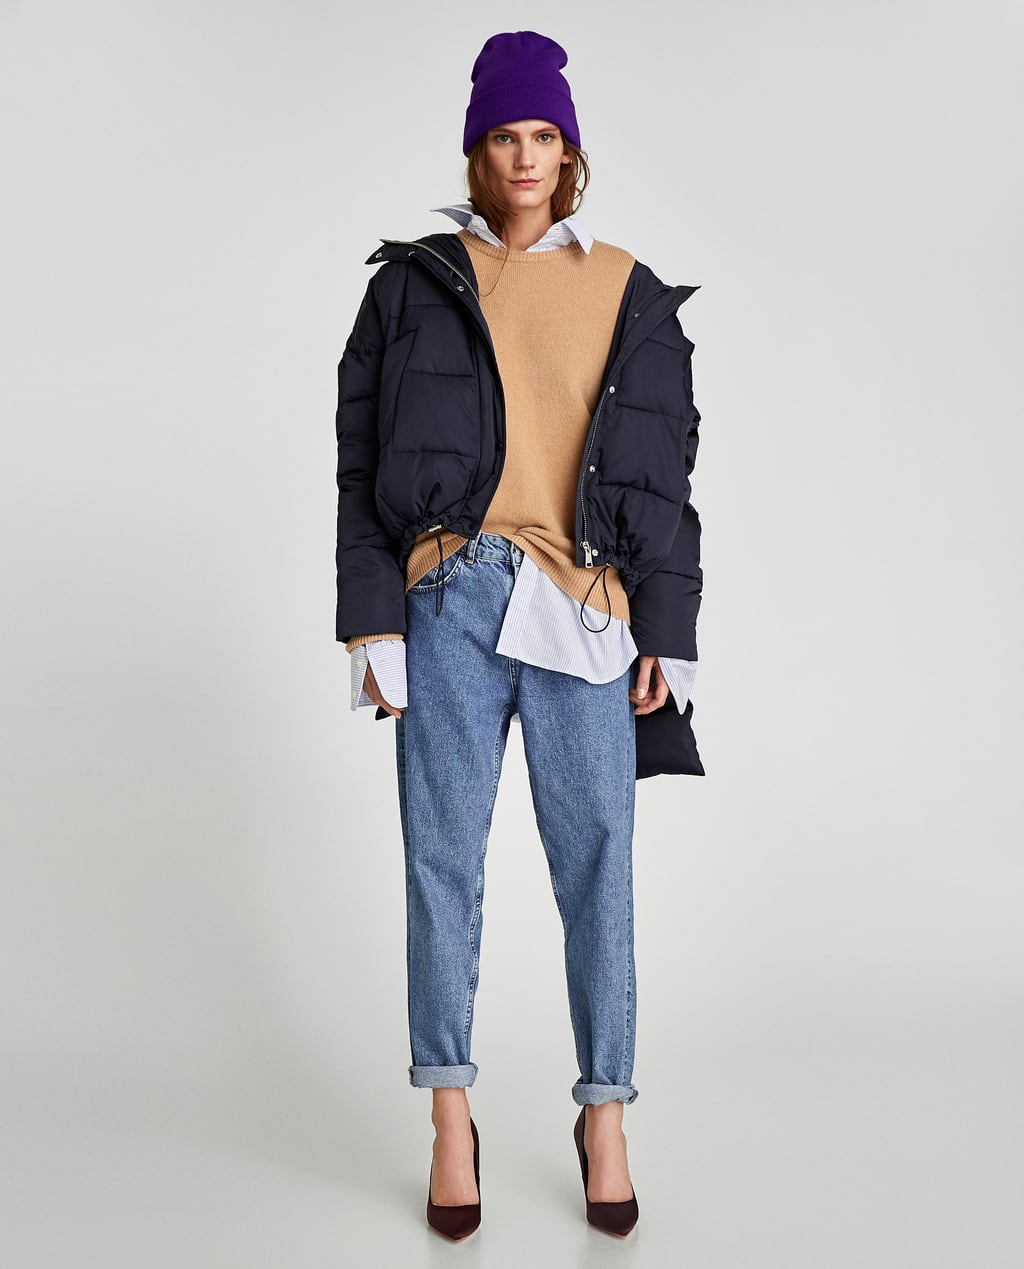 QUILTED JACKET WITH SCARF - COLLECTION-SALE-WOMAN | ZARA United States : zara mens quilted jacket - Adamdwight.com